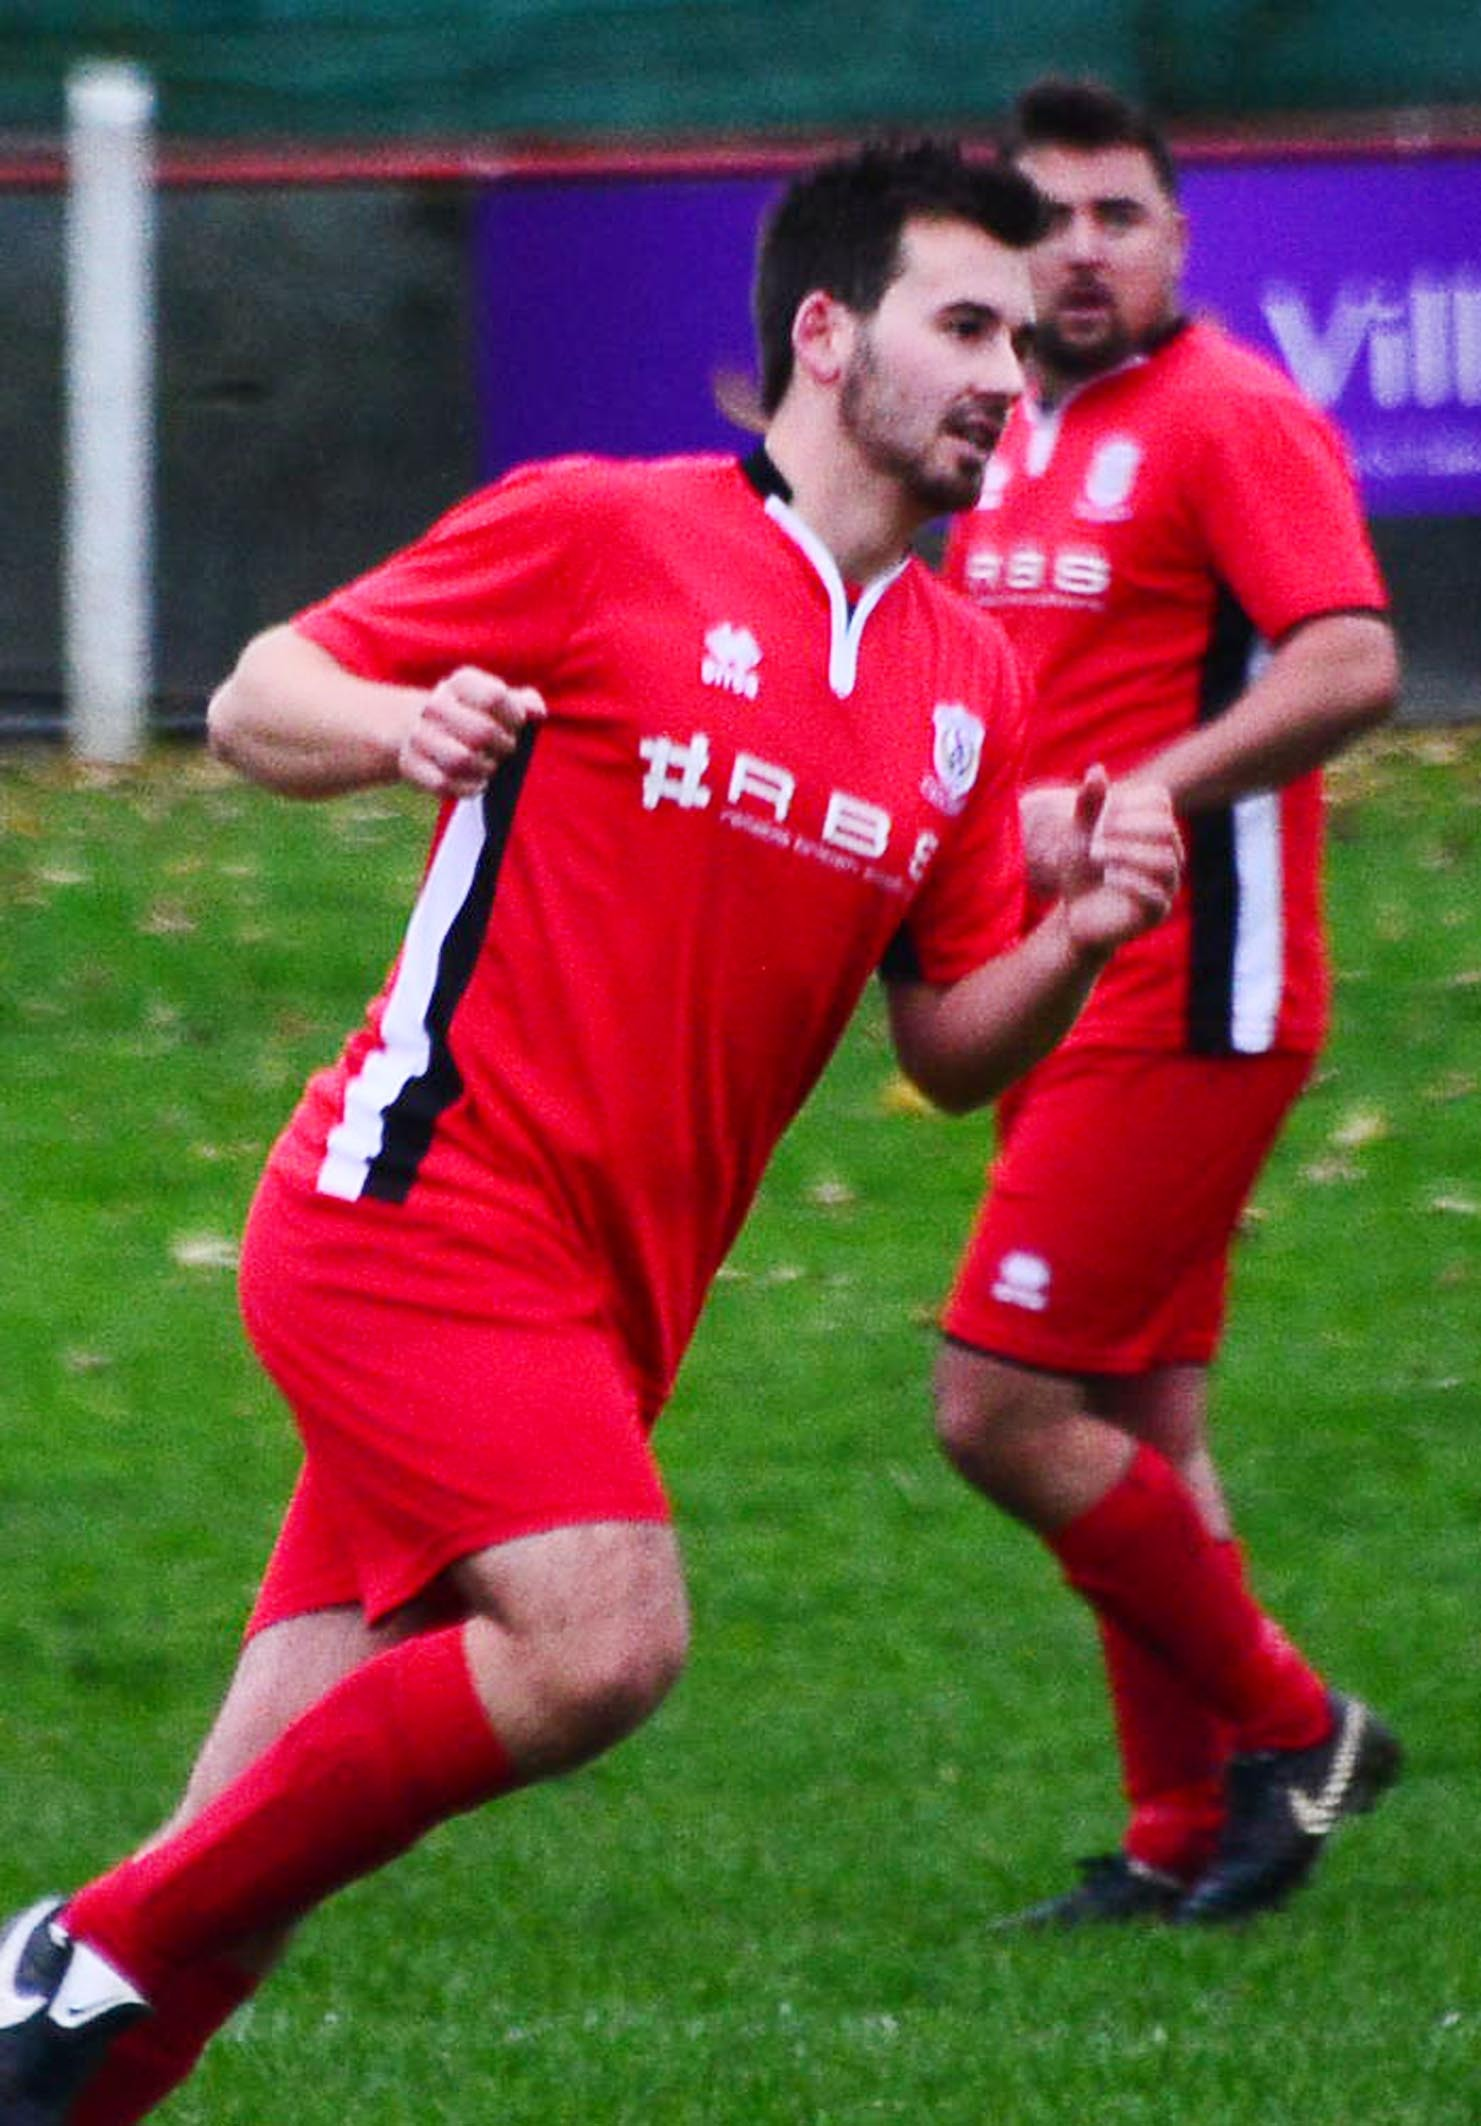 DOUBT: James Boyland could miss Chard Town's match tomorrow. Pic: Steve Richardson